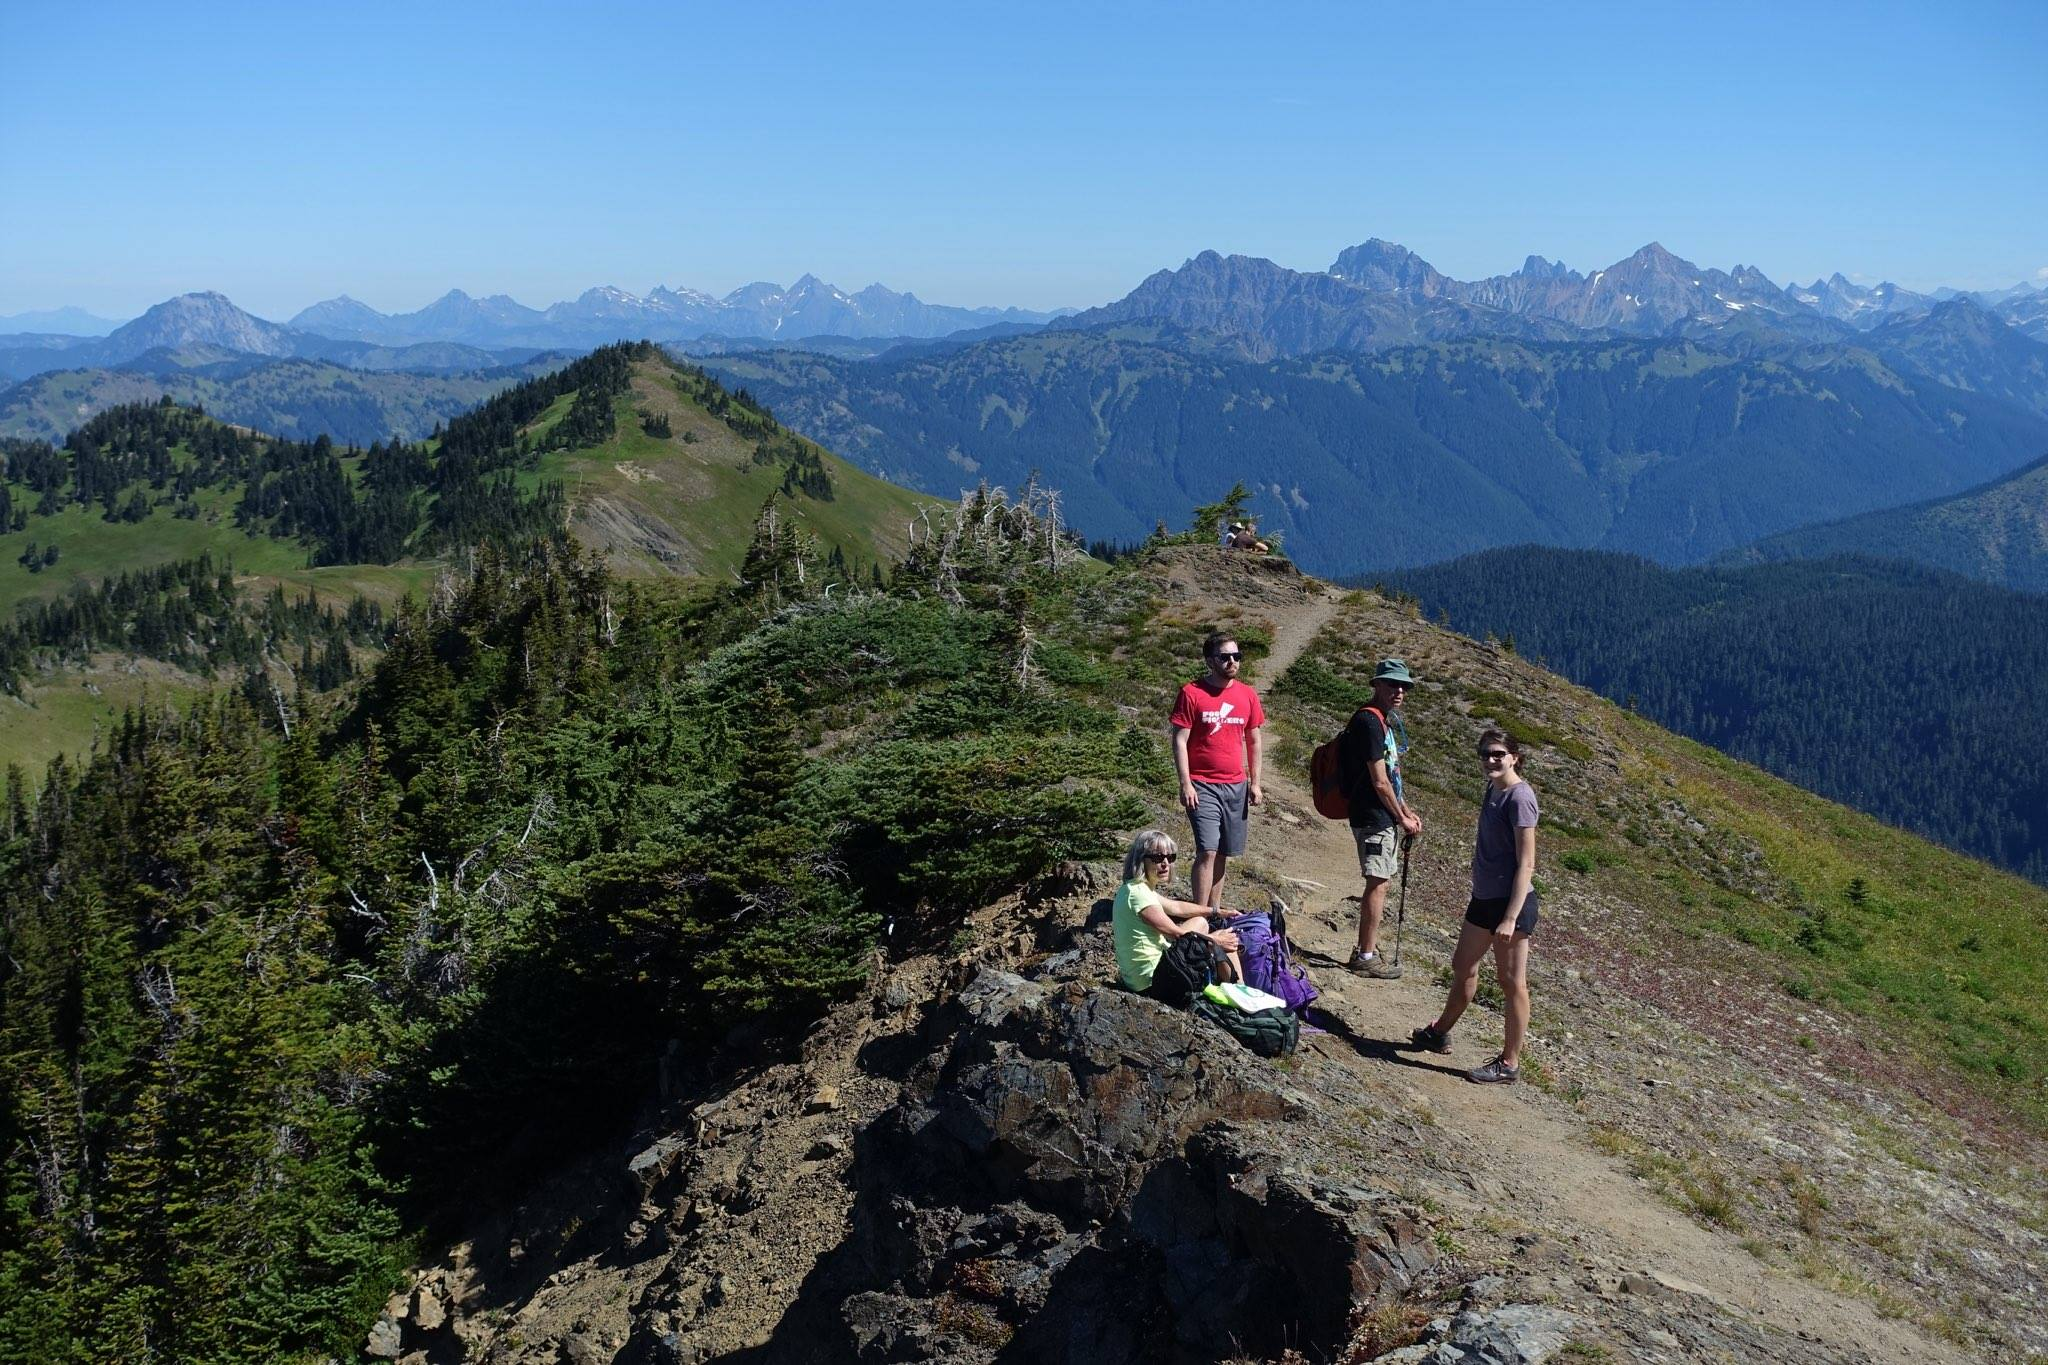 Four hikers stopped for lunch on a ridge with mountains in the background.